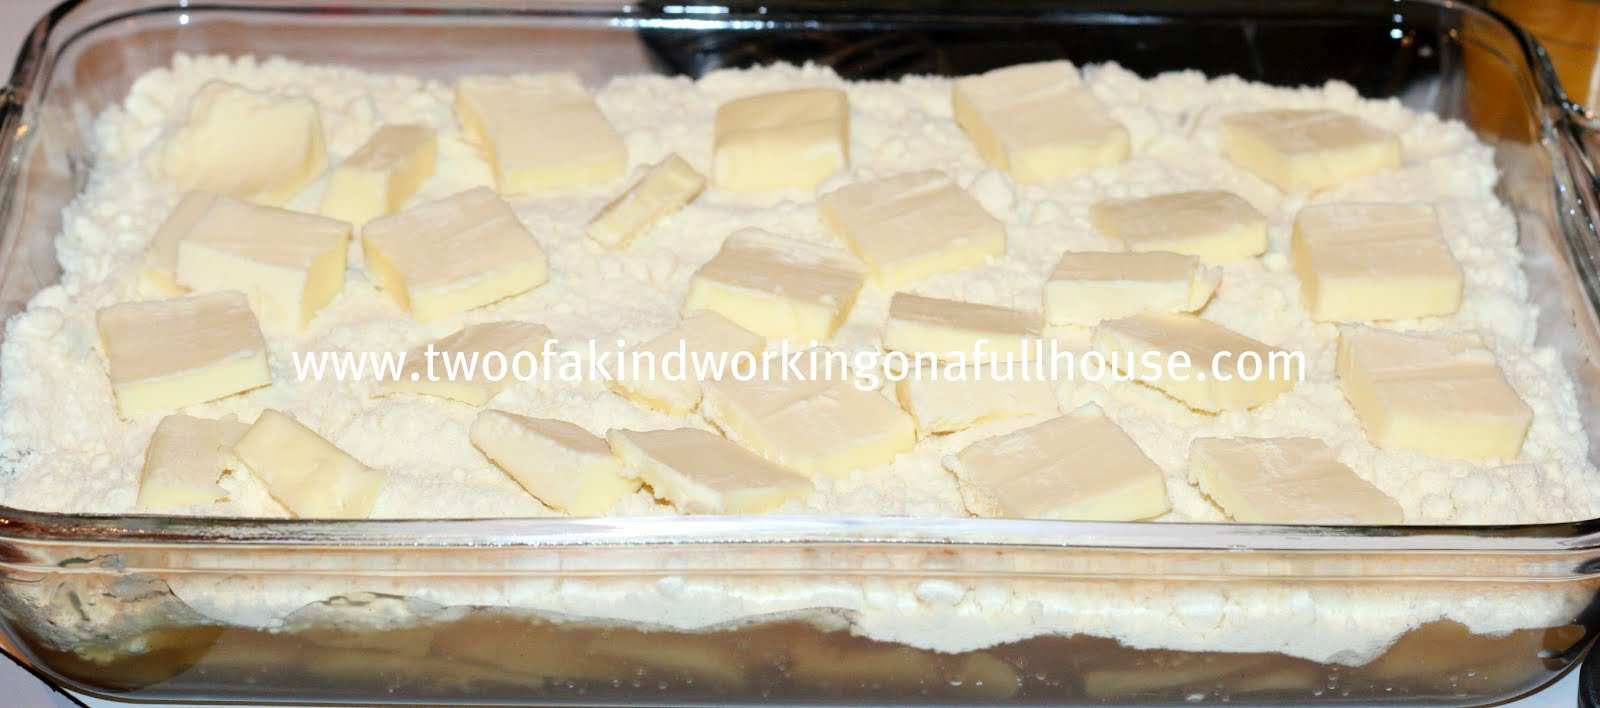 Apple Cobbler Using Pie Filling And Cake Mix